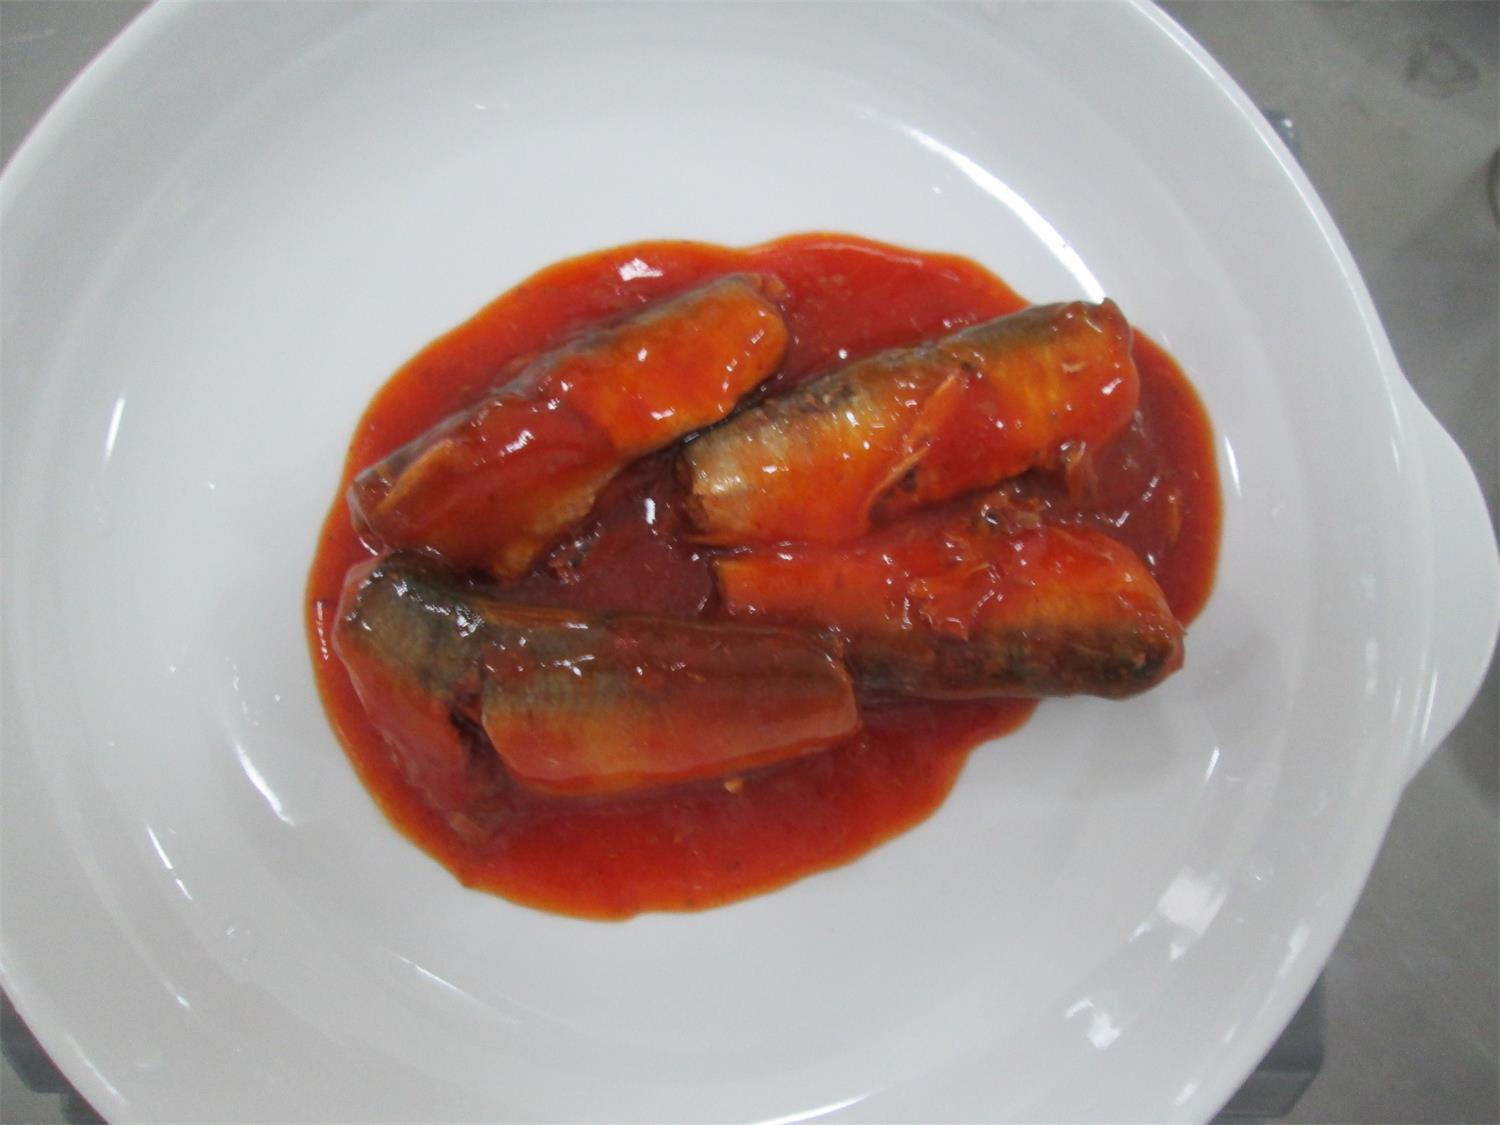 155g/93g canned sardine in tomato sauce with chili,canned fish manufatcurer, cylinder can, ha